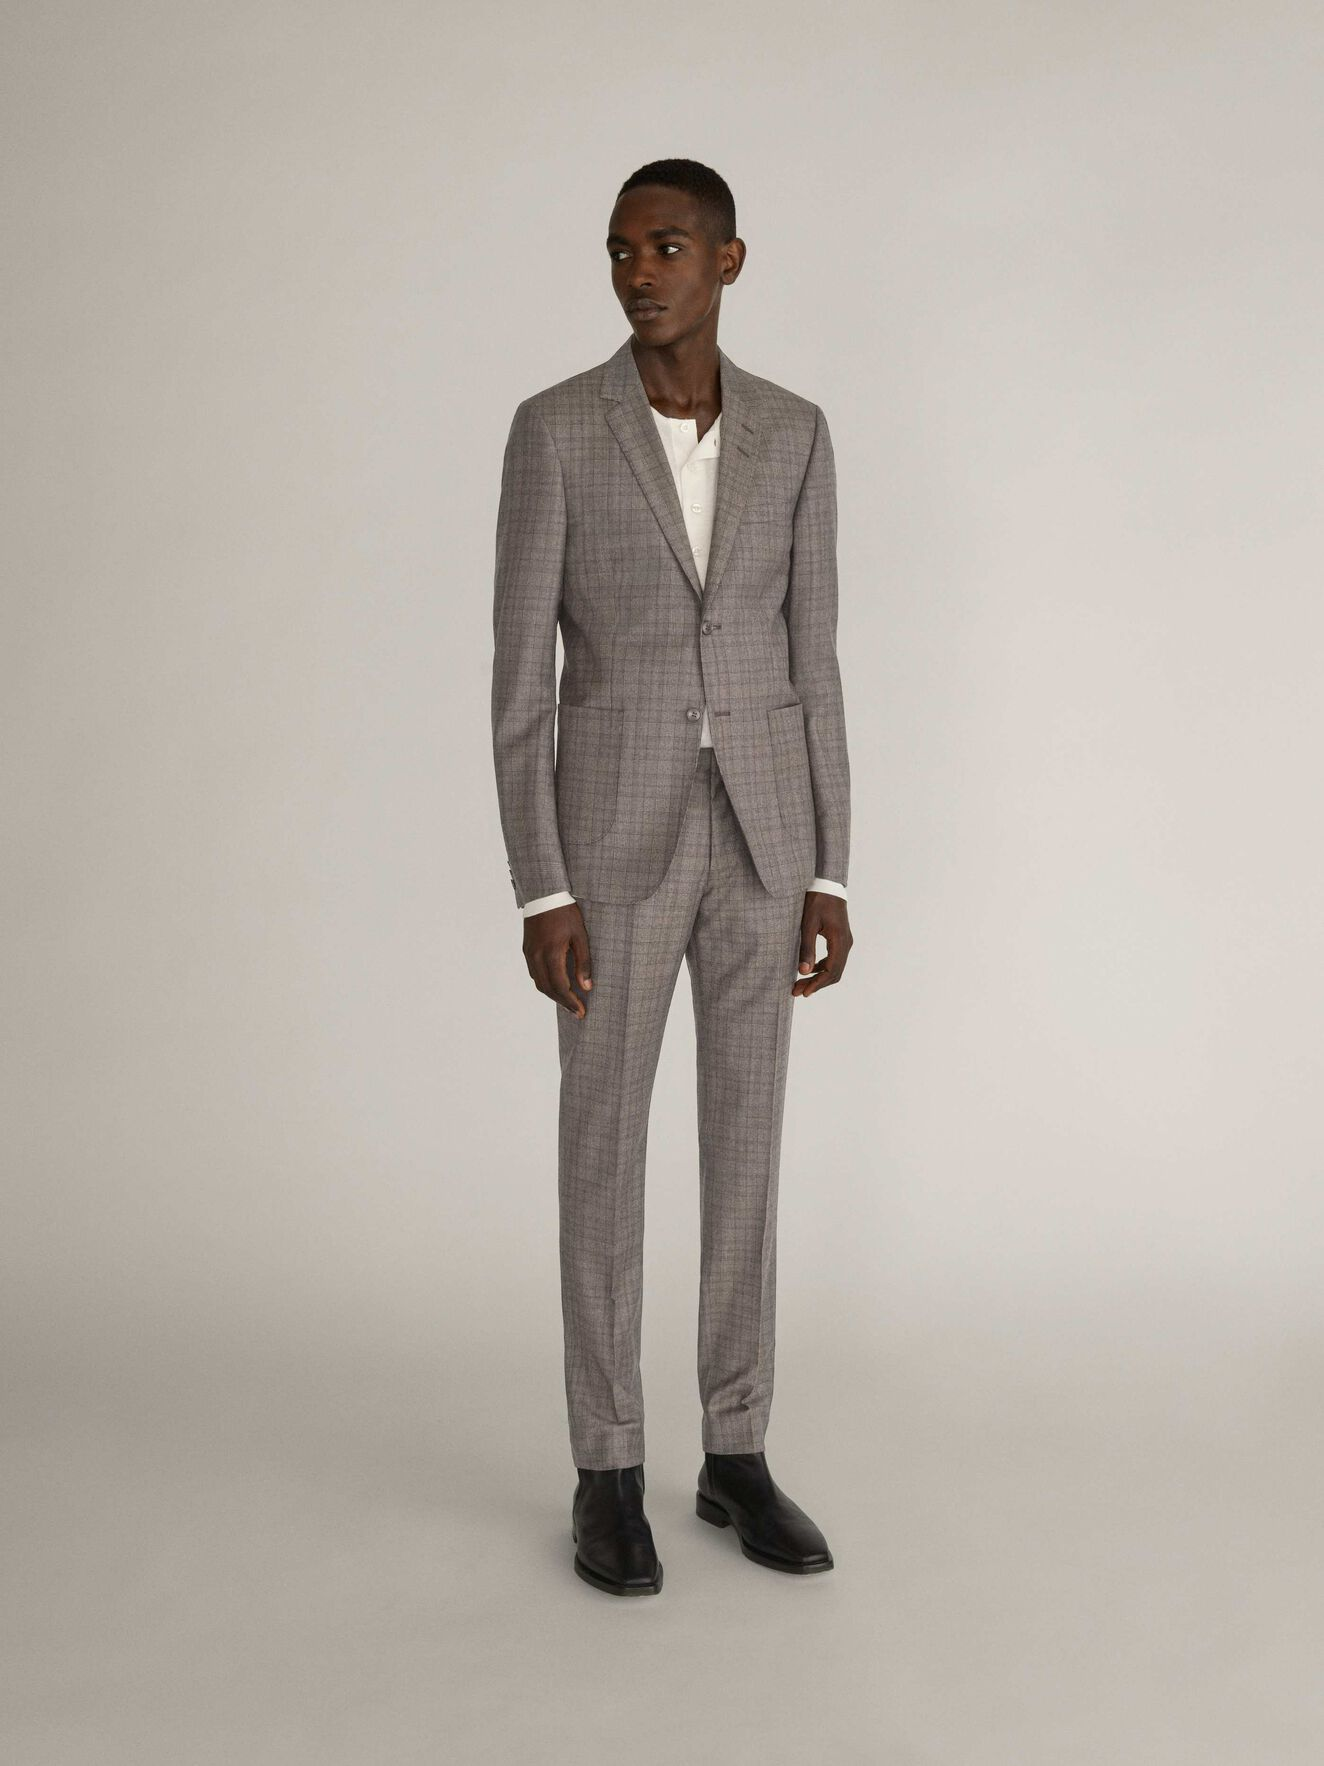 S.2018 Pa Suit in Macchiato from Tiger of Sweden